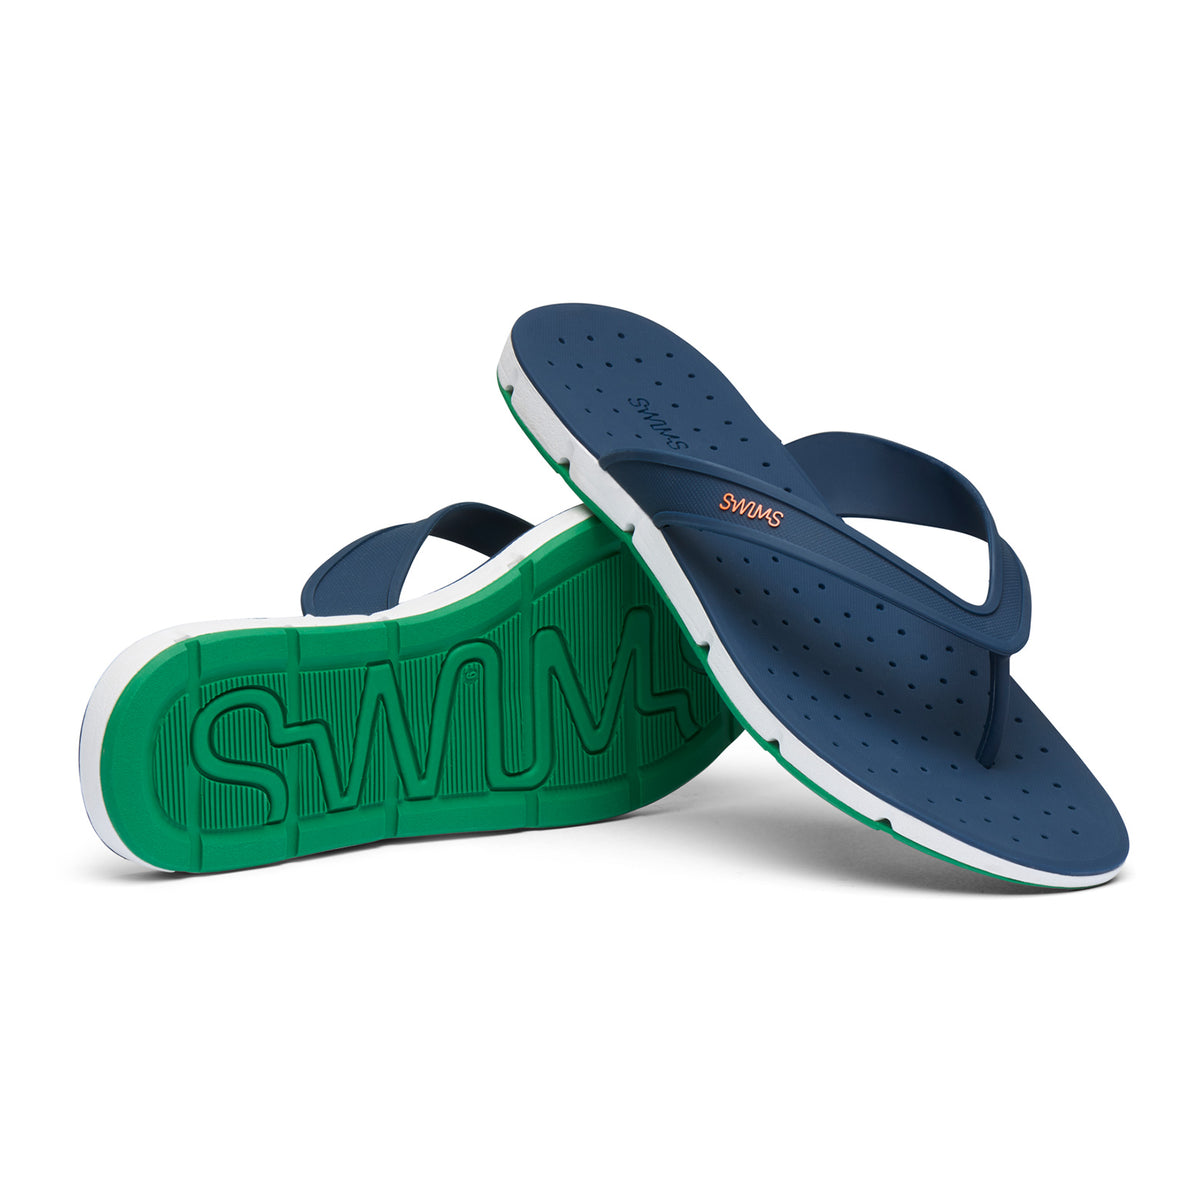 Breeze Thong Sandal - background::white,variant::Navy/Jolly Green